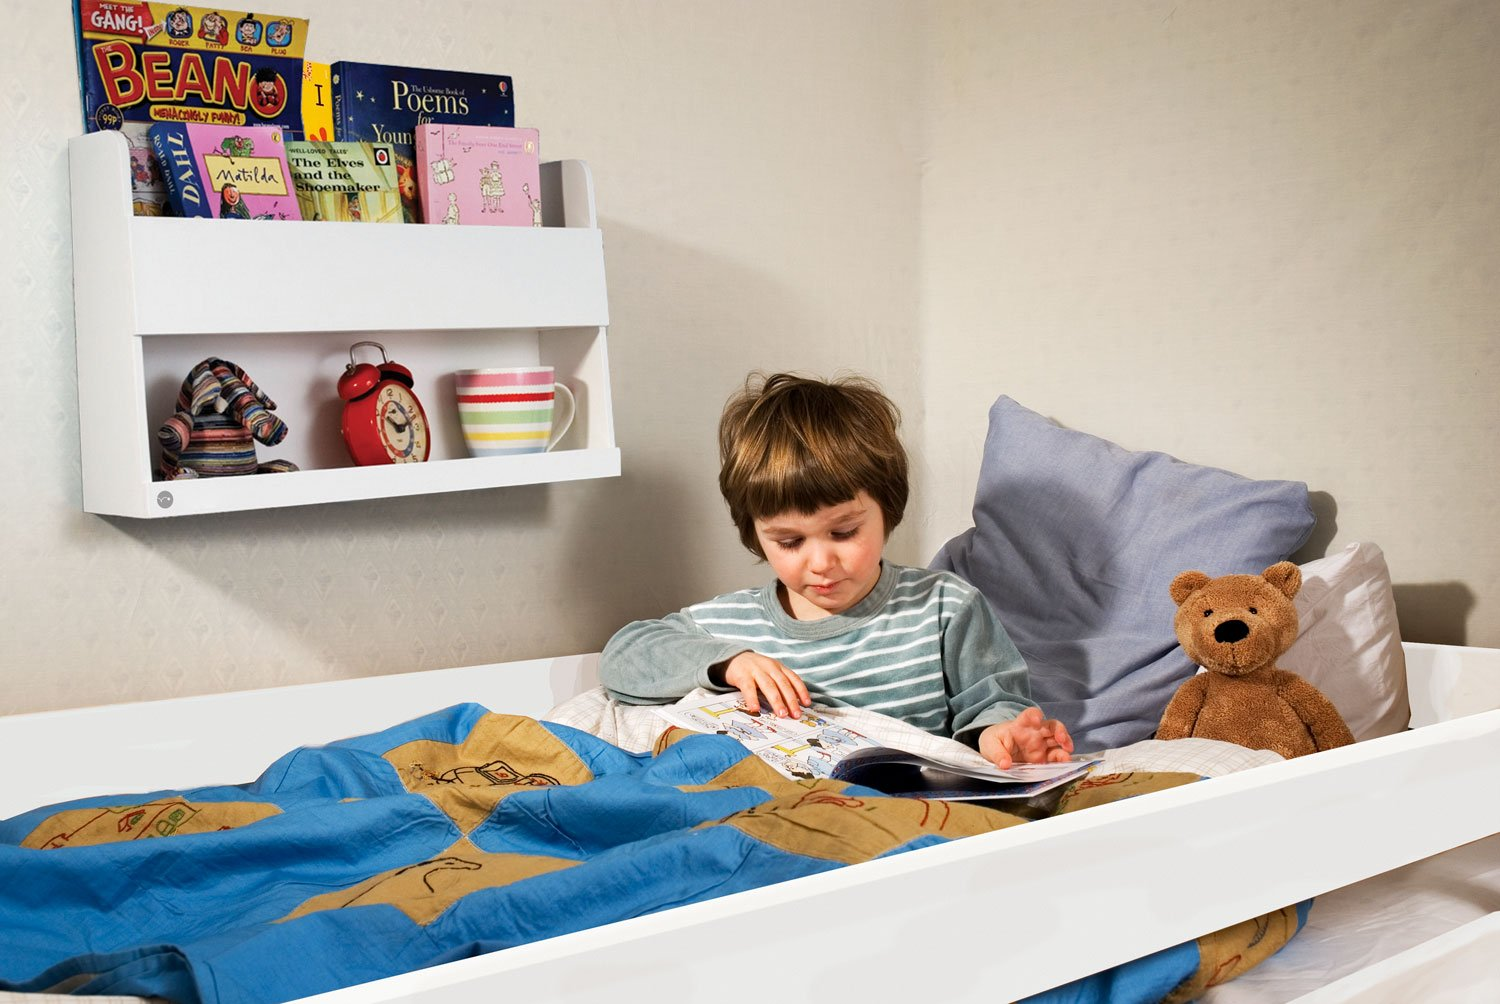 Tidy Books ® -The Original Bunk Bed Buddy™, Bunk Bed Shelf in White. - Floating Shelves for Kids Storage next to Bunk Beds and Cabin Beds - Wooden Shelves - 33 x 53 x 12cm BBB-W